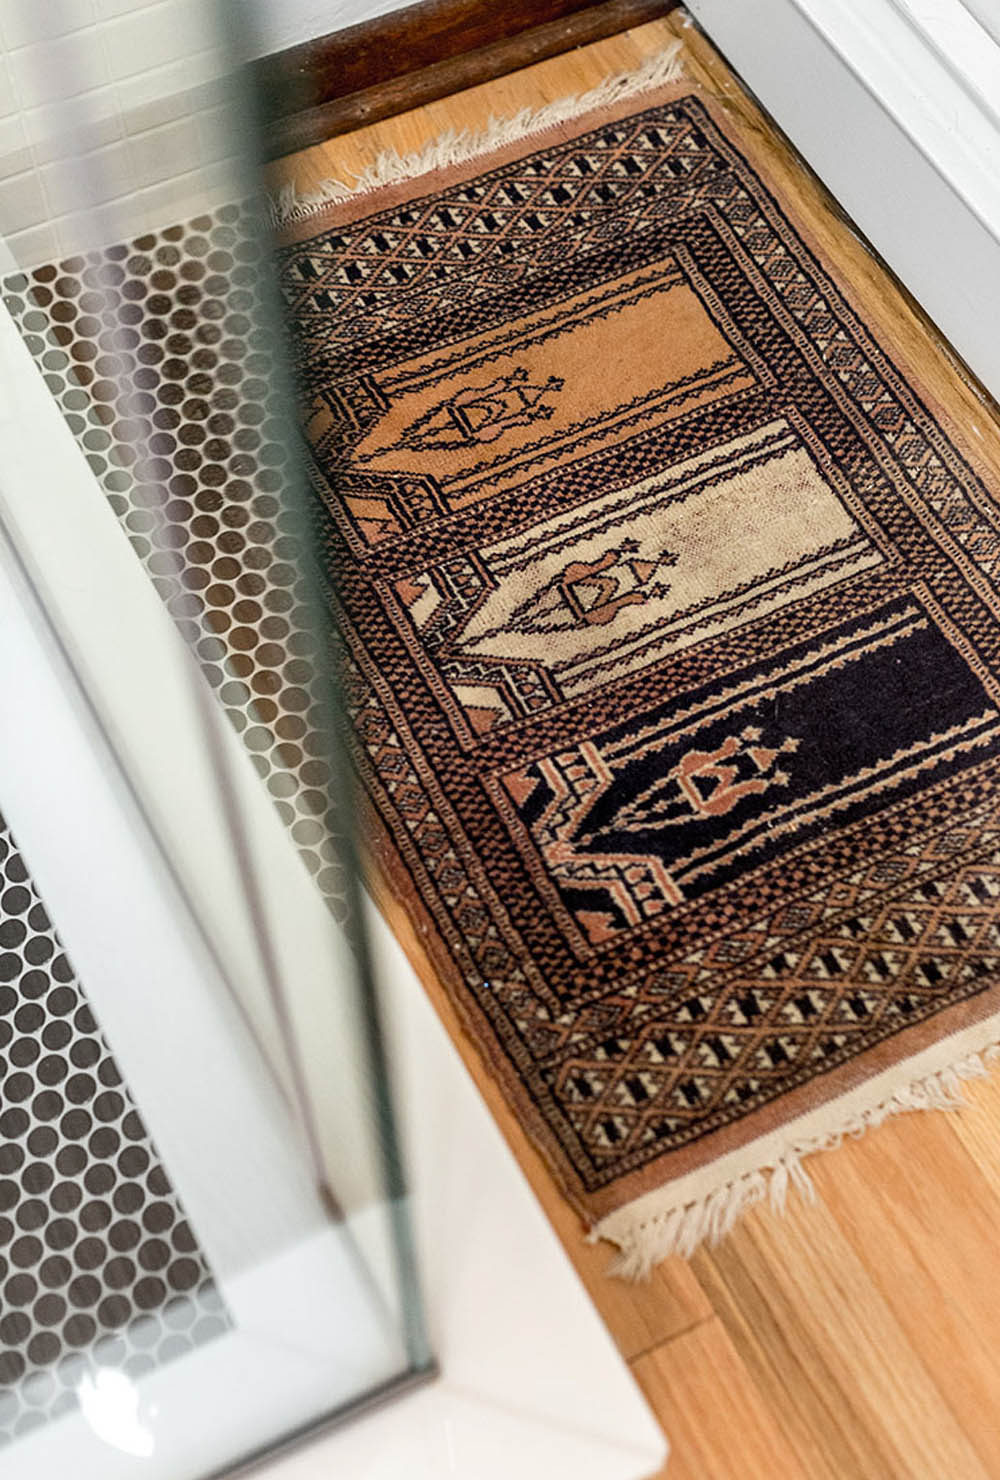 A brown patterned bath mat on wood flooring.